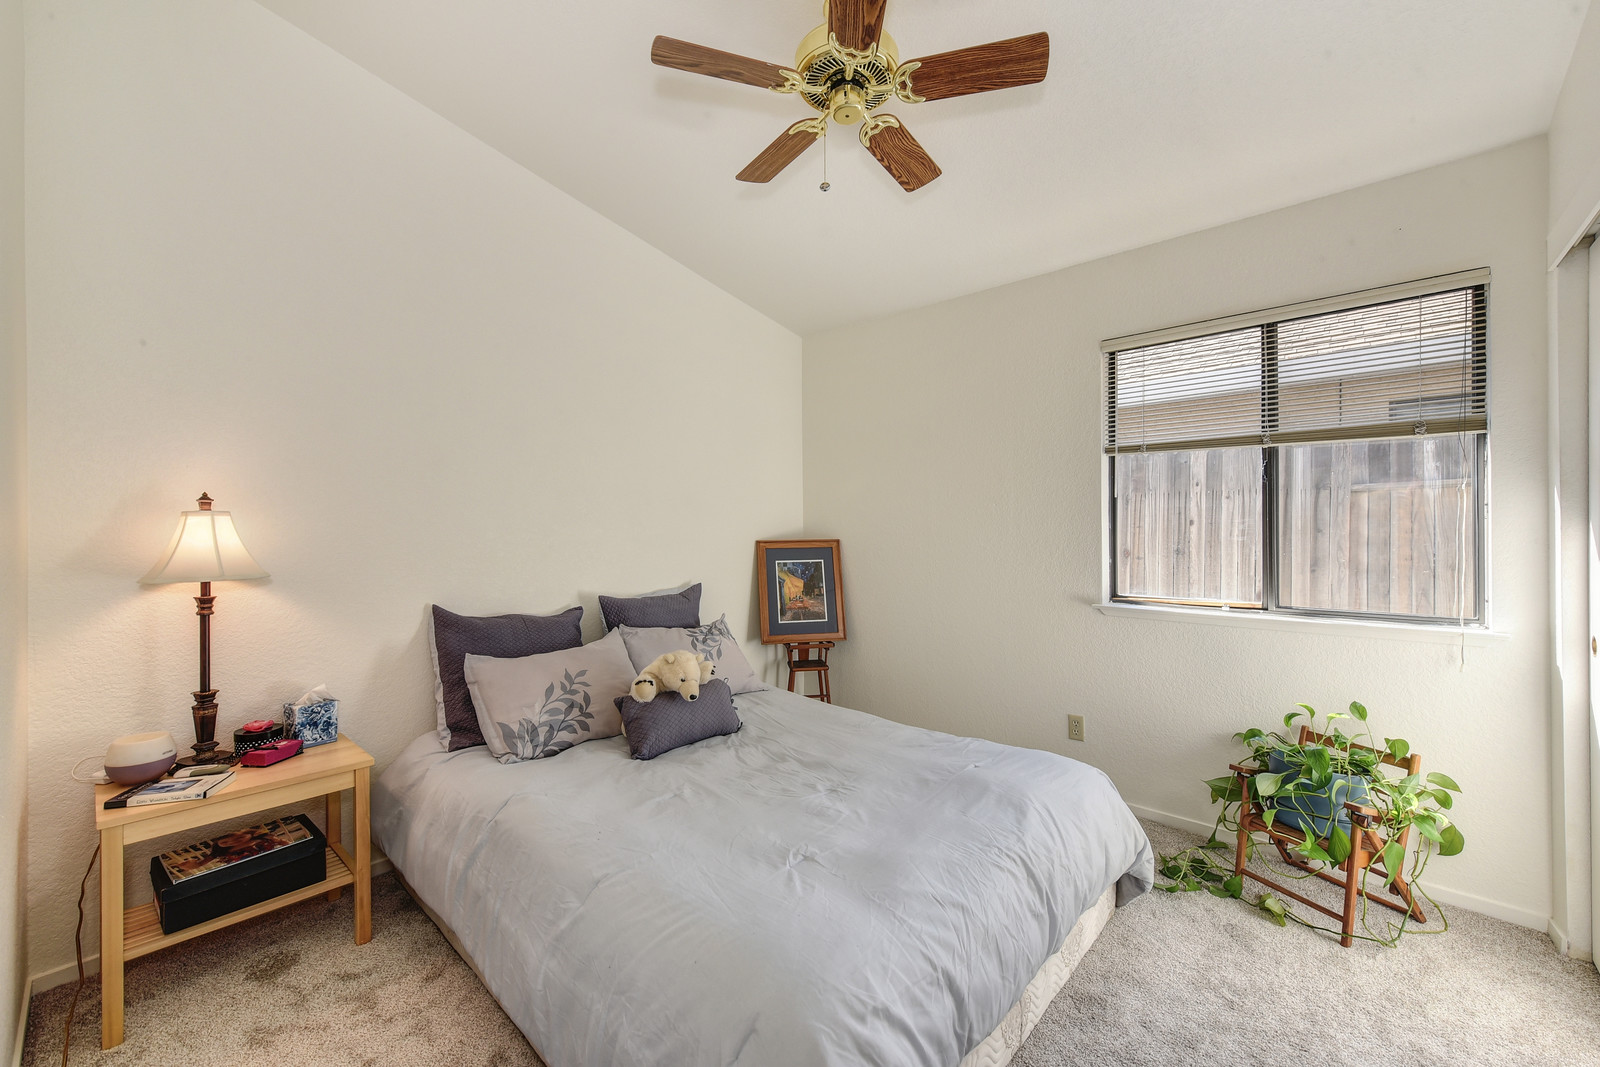 Third bedroom 9158 Old Creek Dr | Listed by Jesse Coffey with Keller Williams Realty